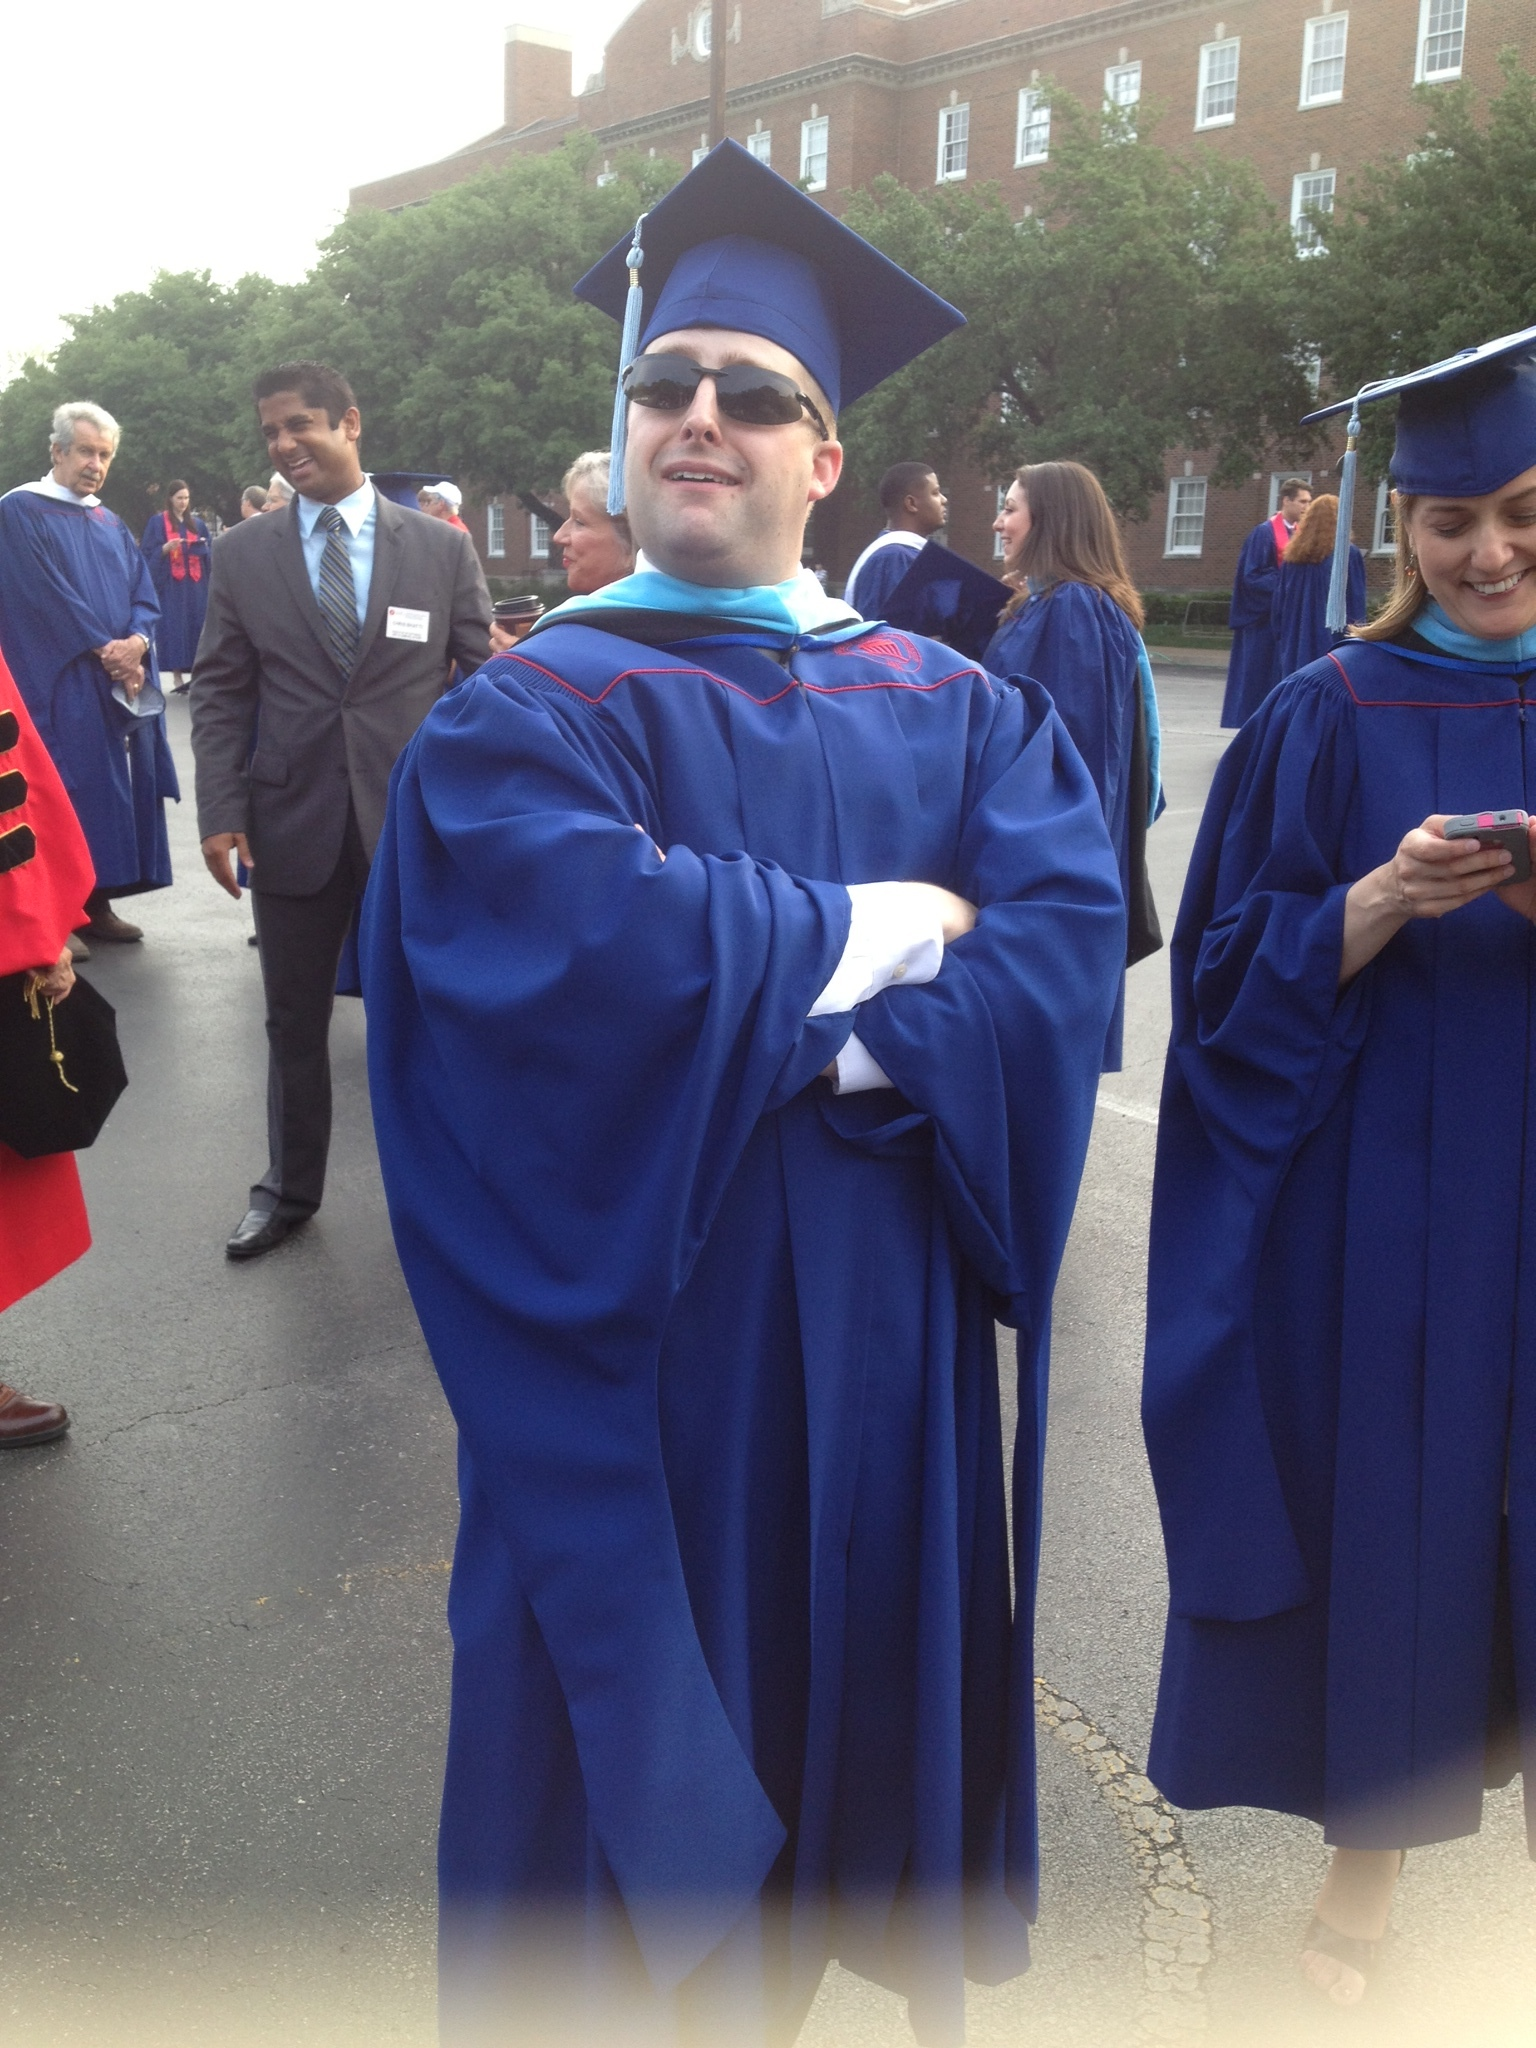 5.18.13 That time he got his Masters degree from SMU!